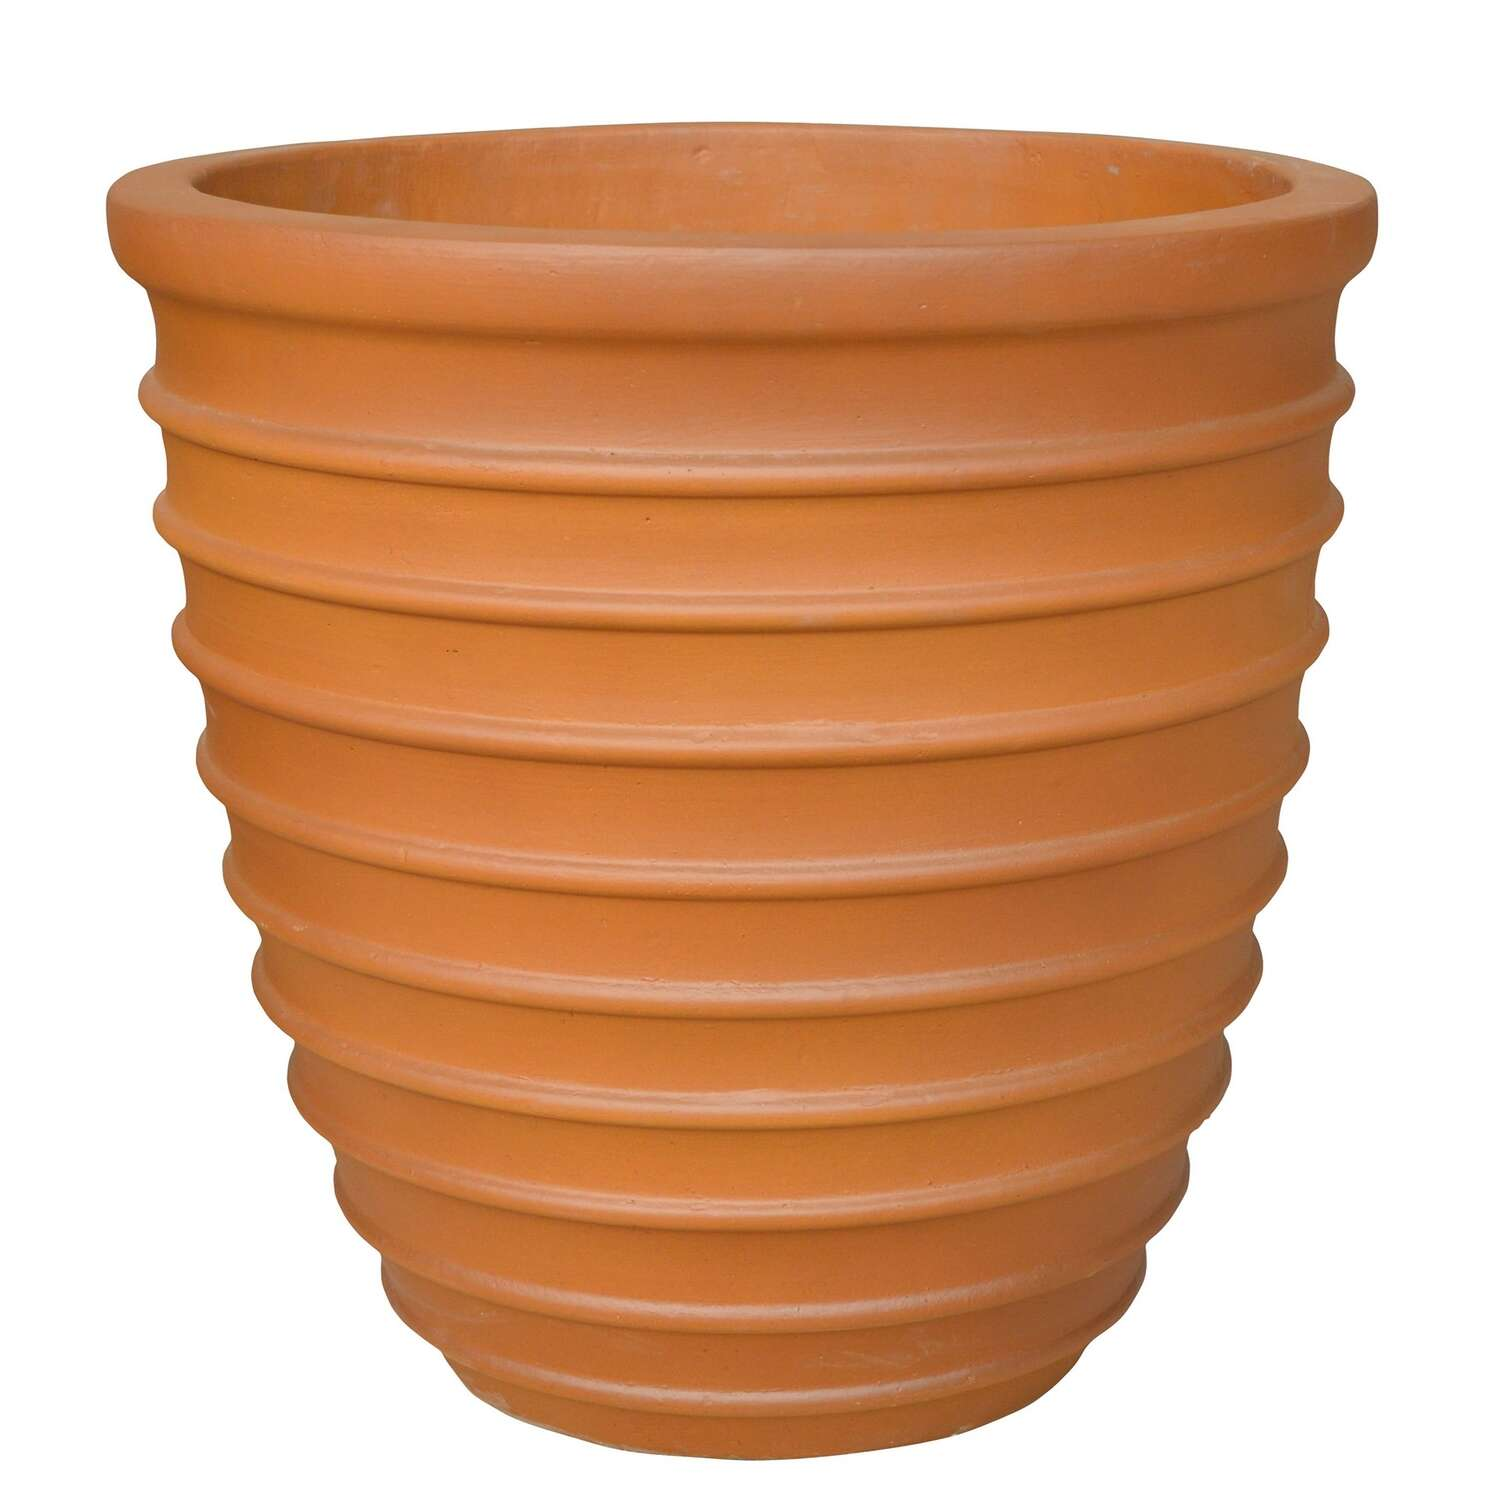 Southern Patio  10.24 in. H x 10 in. W Ceramic  Beehive  Planter  Terracotta